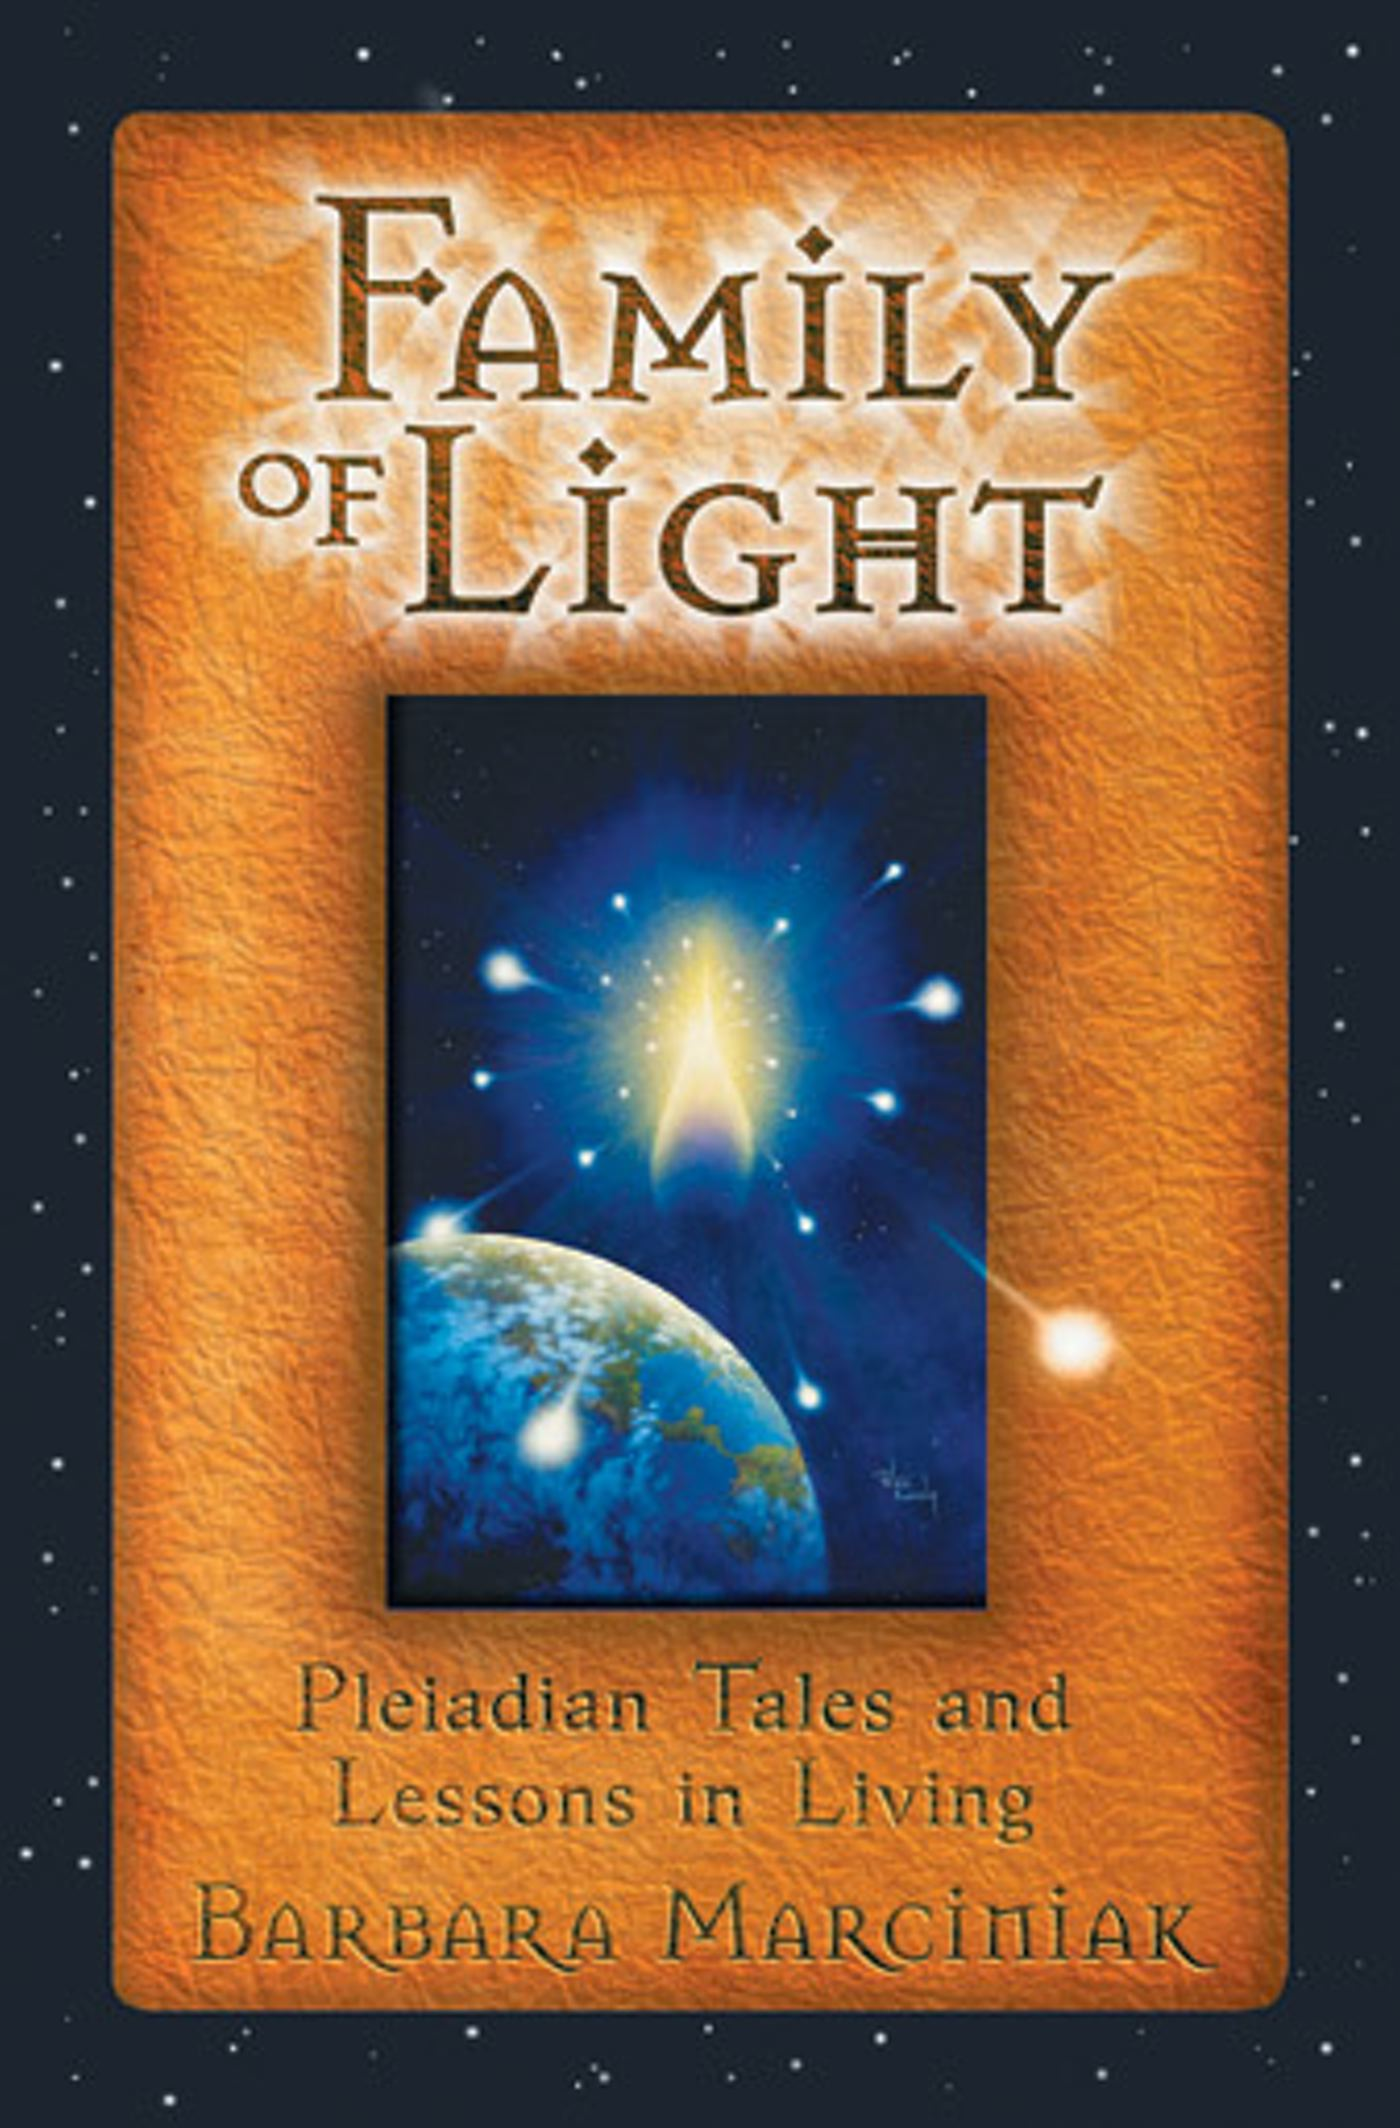 Family of Light | Book by Barbara Marciniak | Official